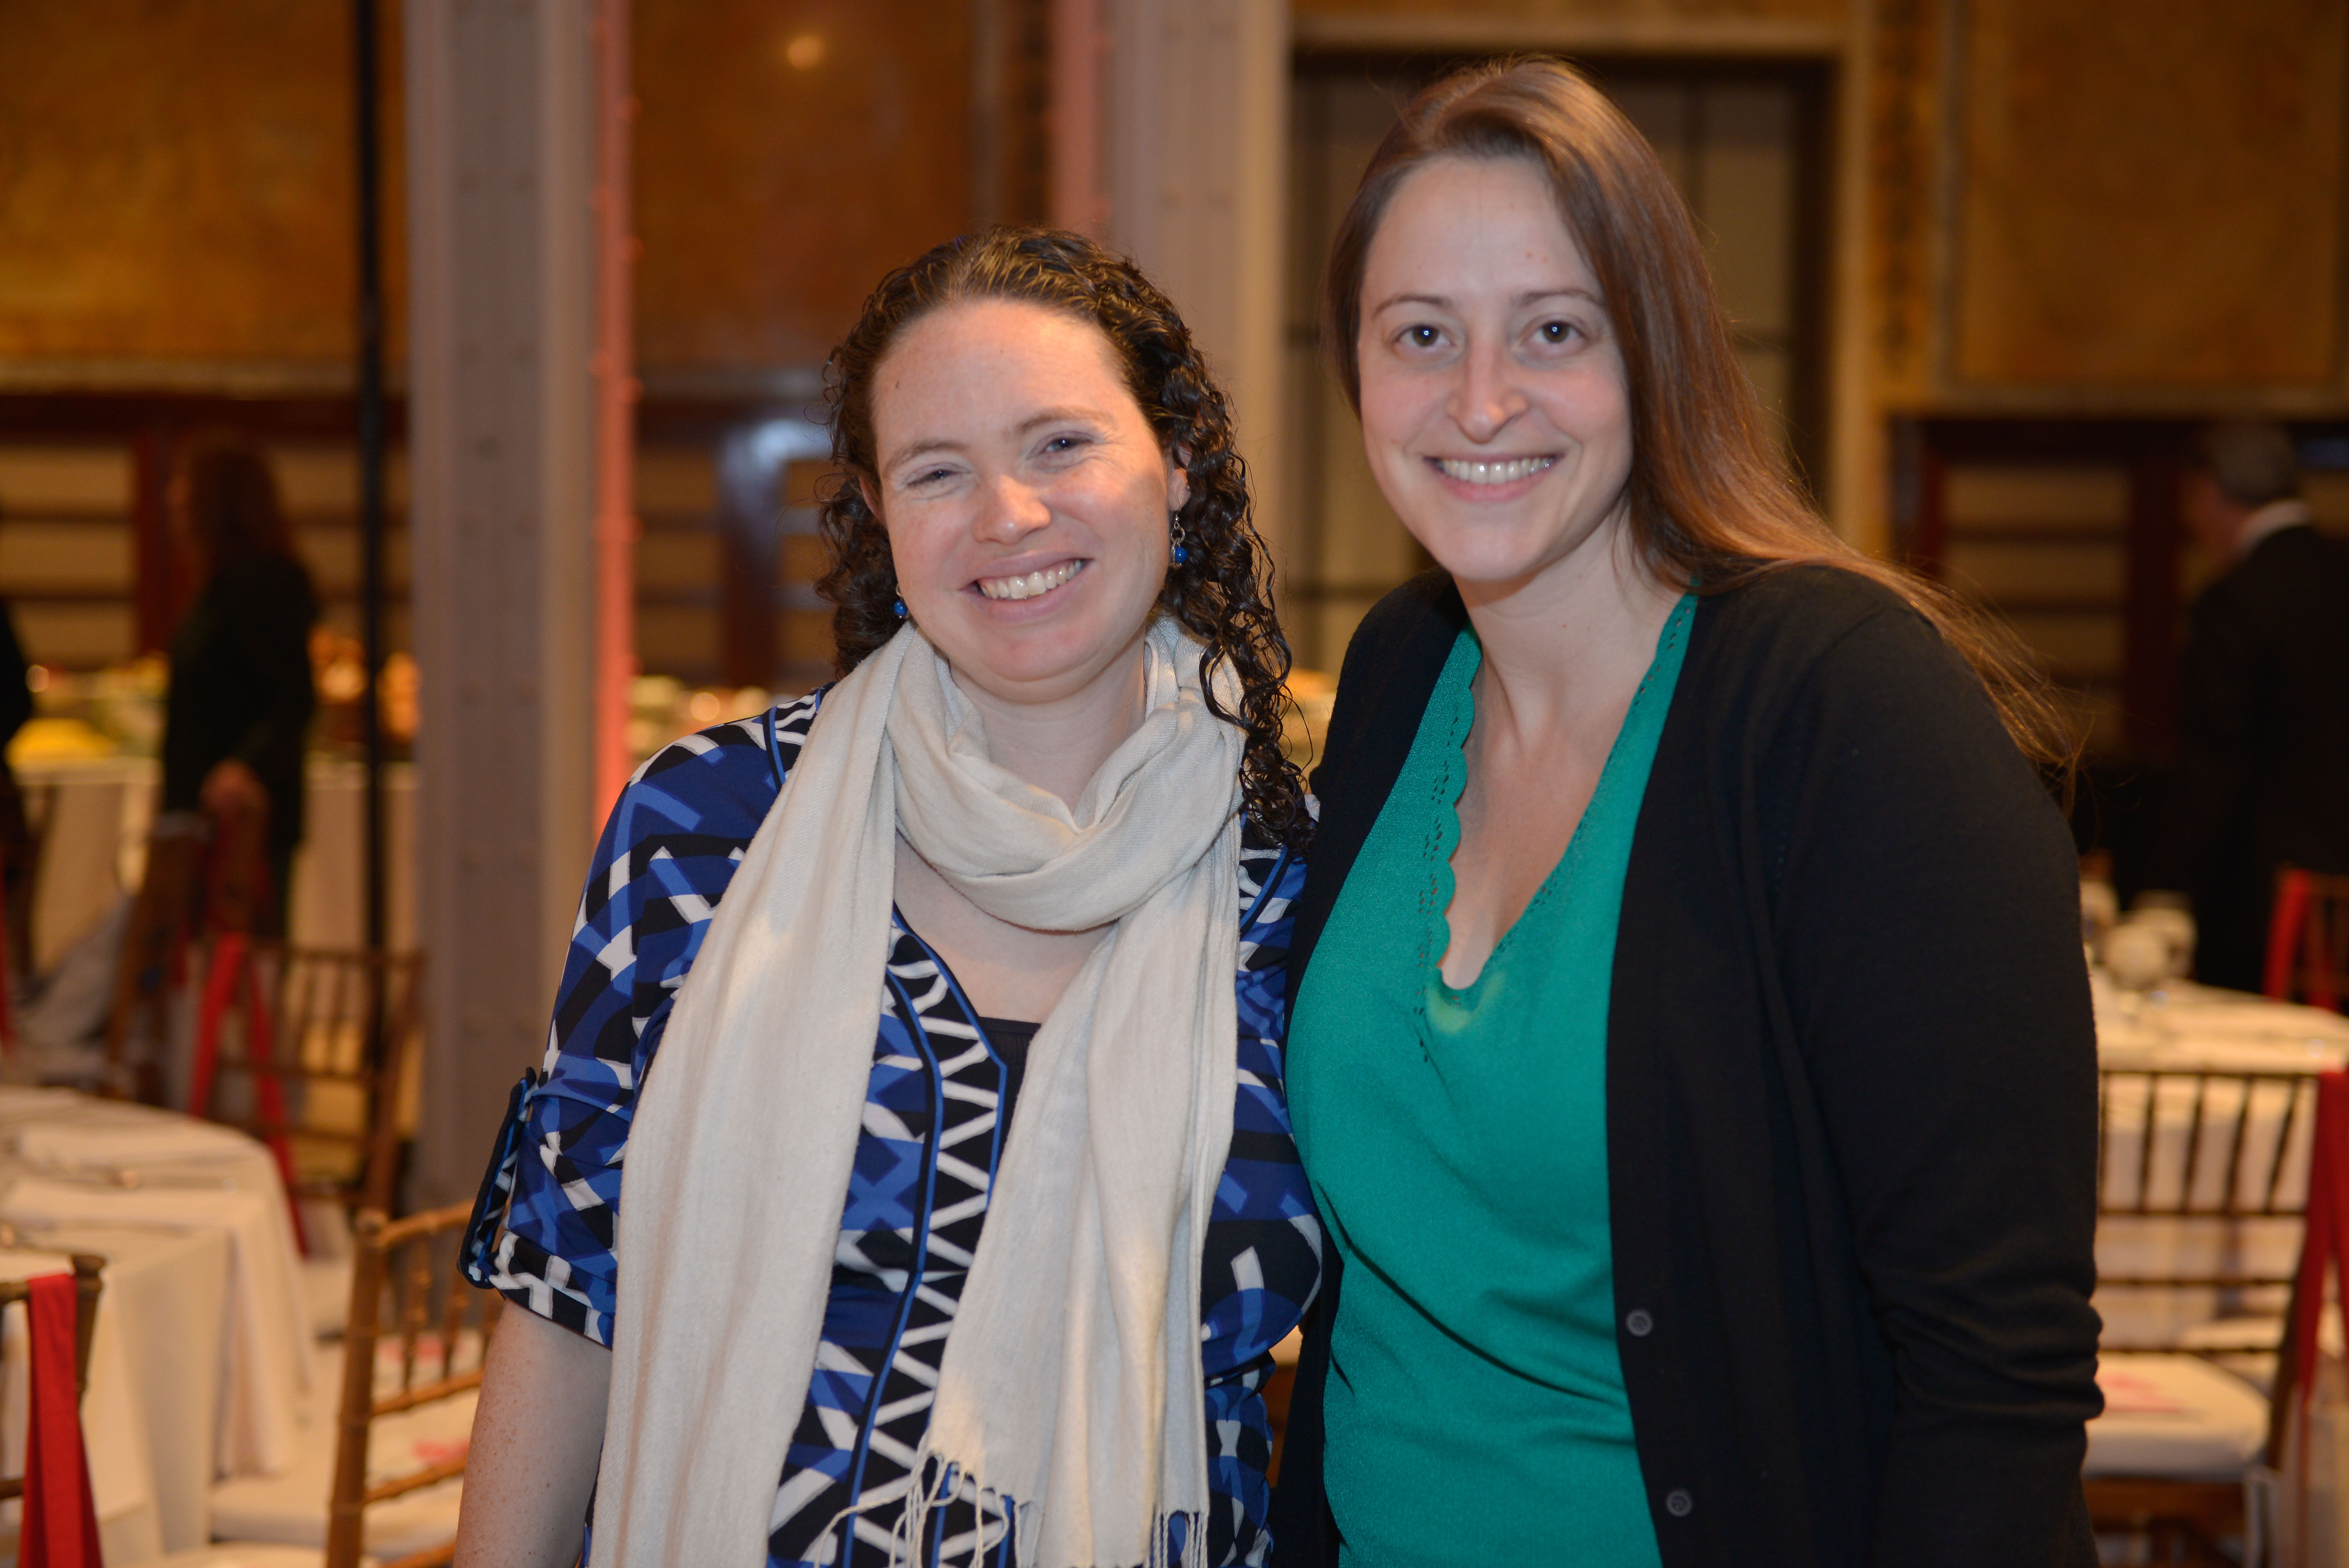 From left: 2015 Pomegranate Prize recipient Erica Belkin Allen and 2017 Pomegranate Prize recipient Aliza Goodman.